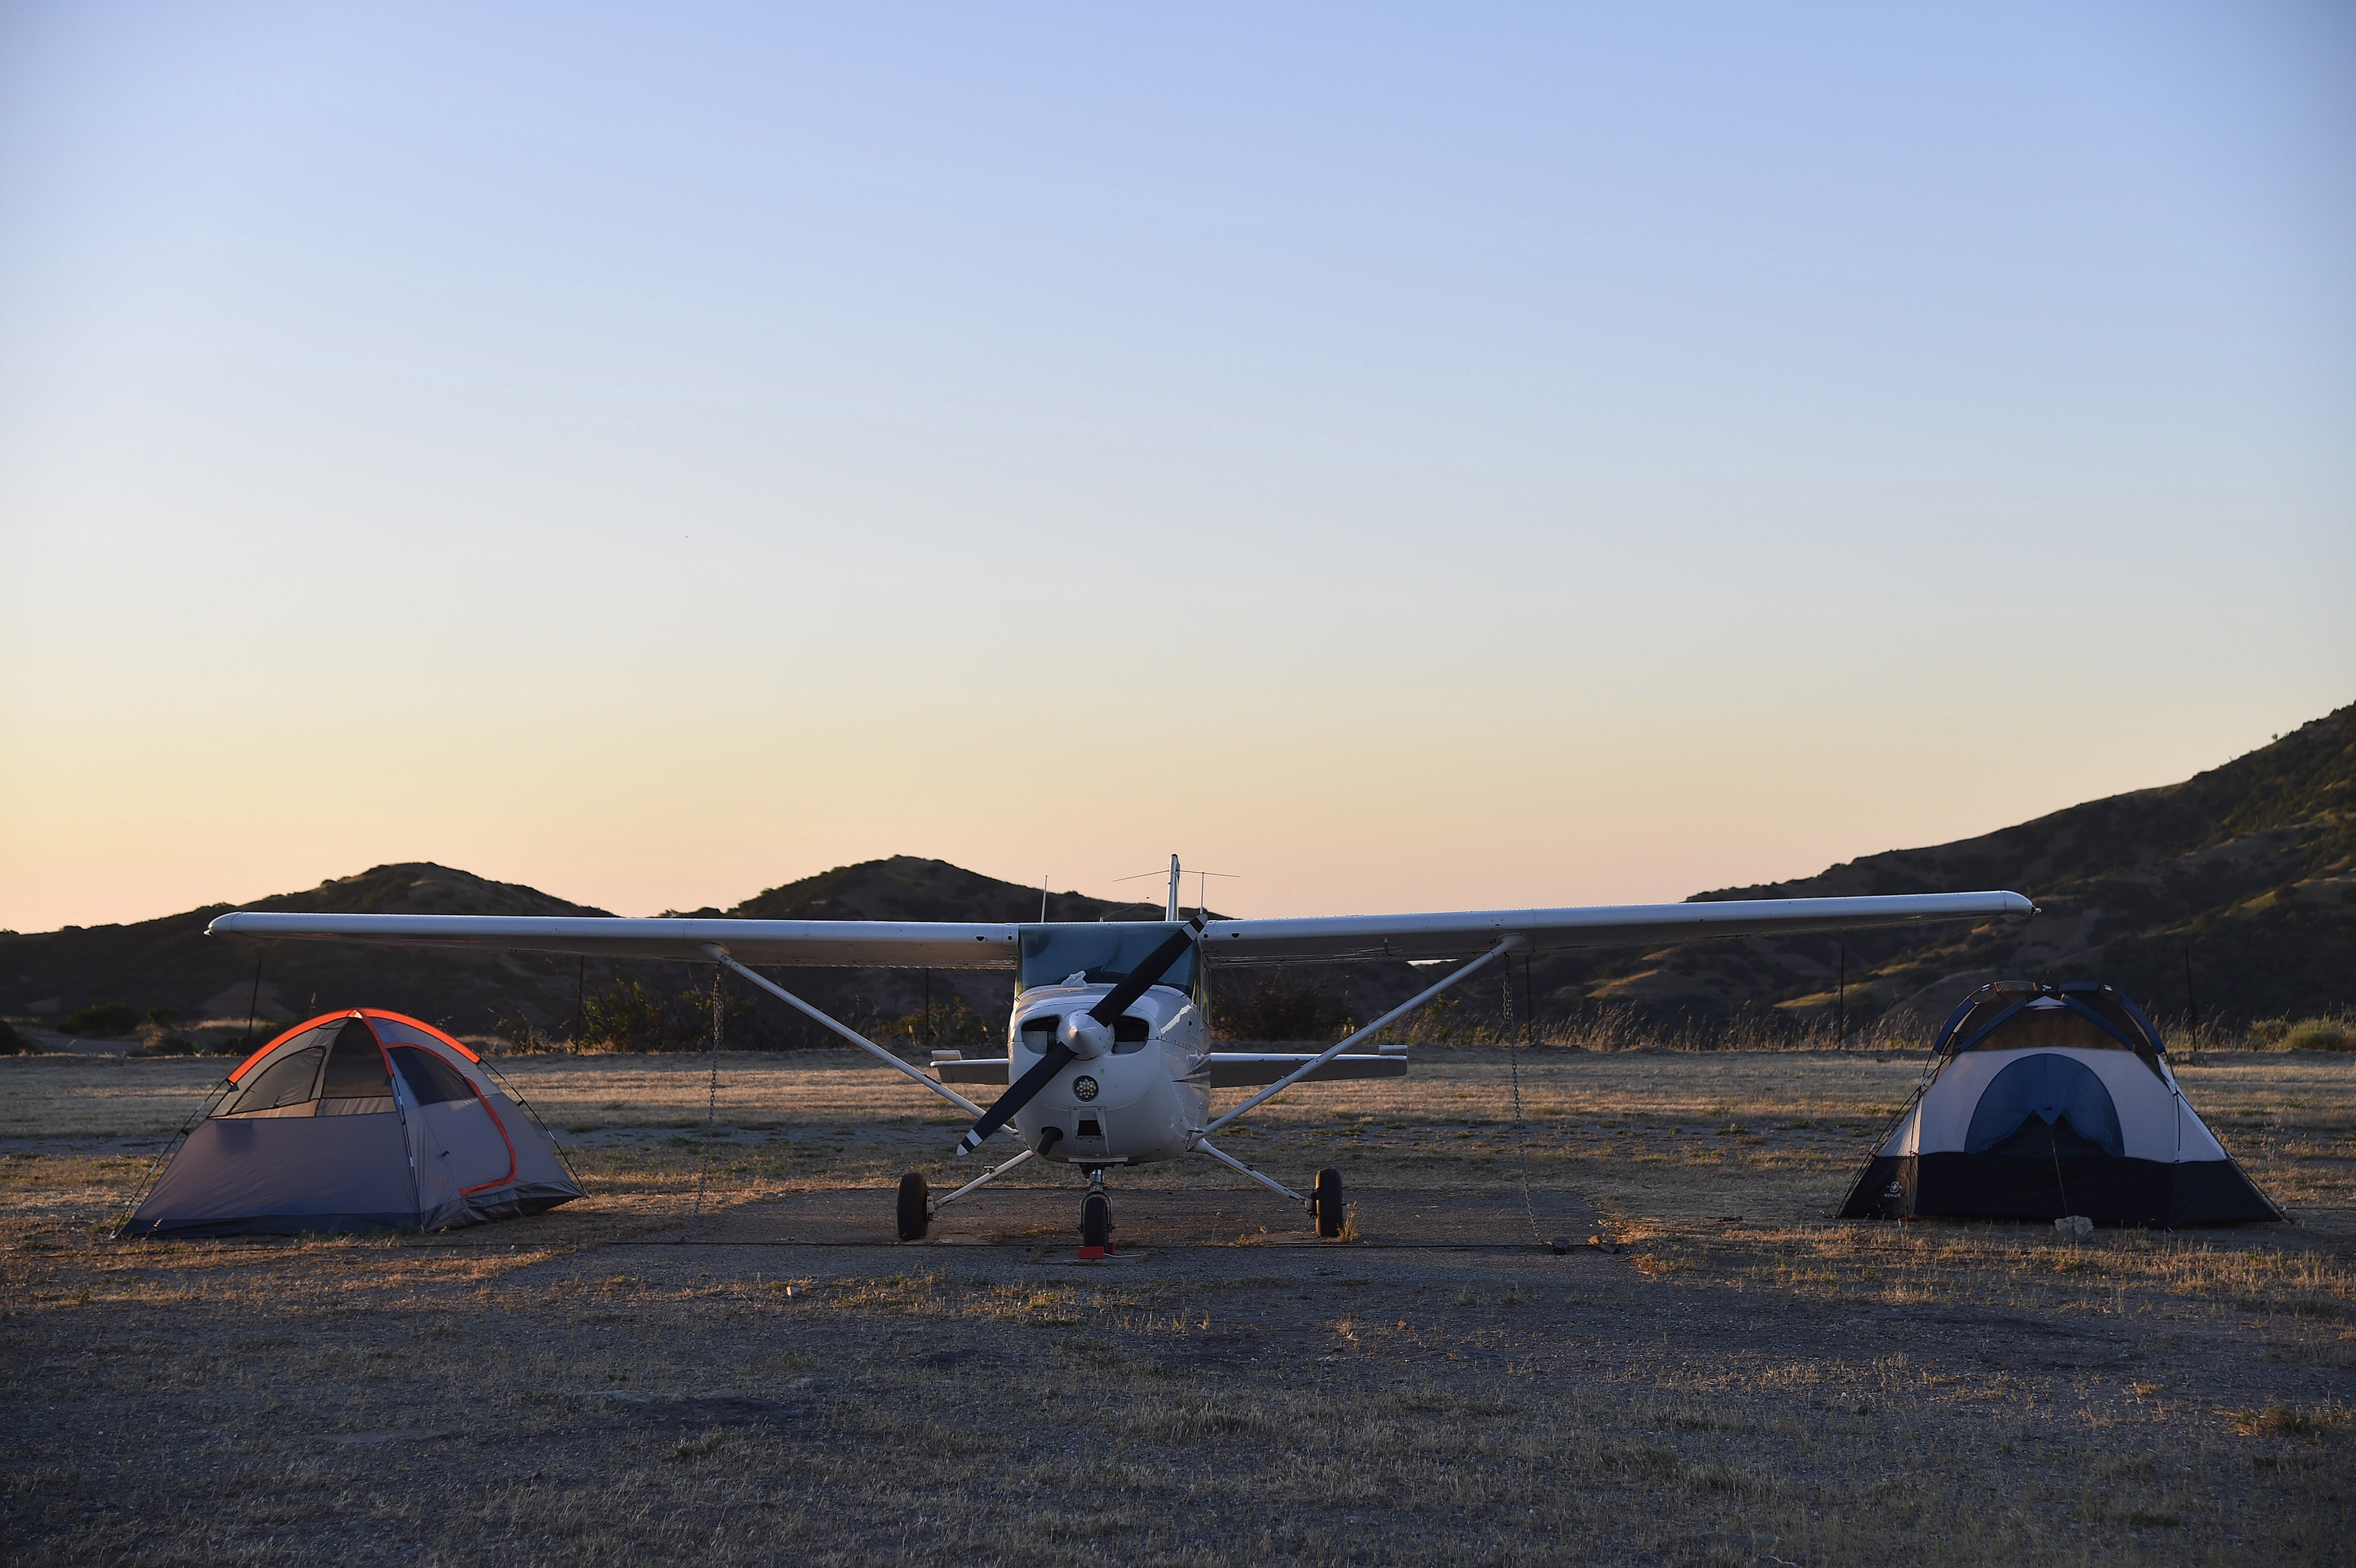 Brothers-in-law Albert Gersh and Steve Destler pitched a couple of tents next to their Cessna 172 on Catalina Island. Photo by David Tulis.